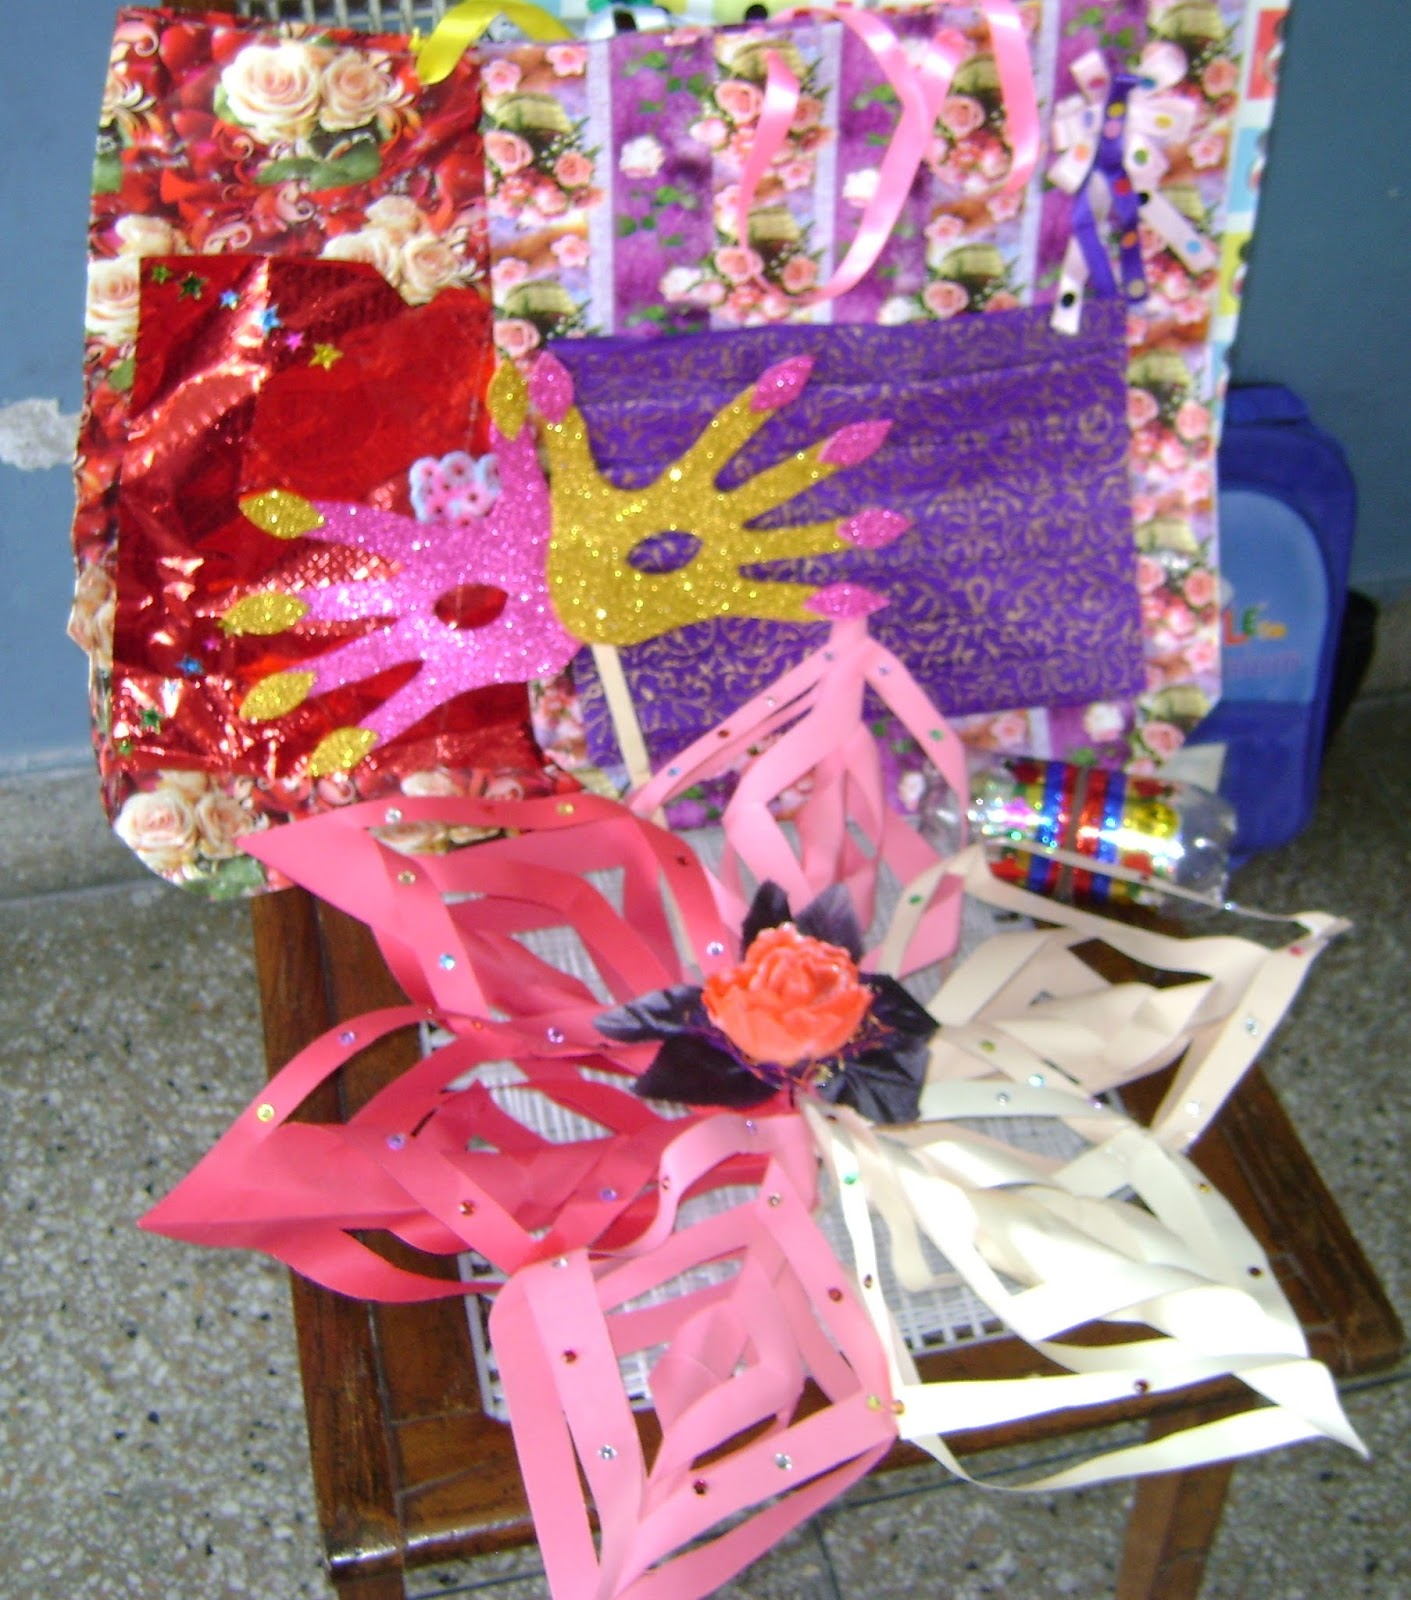 Summer Crafts For Kids Ages 8-12